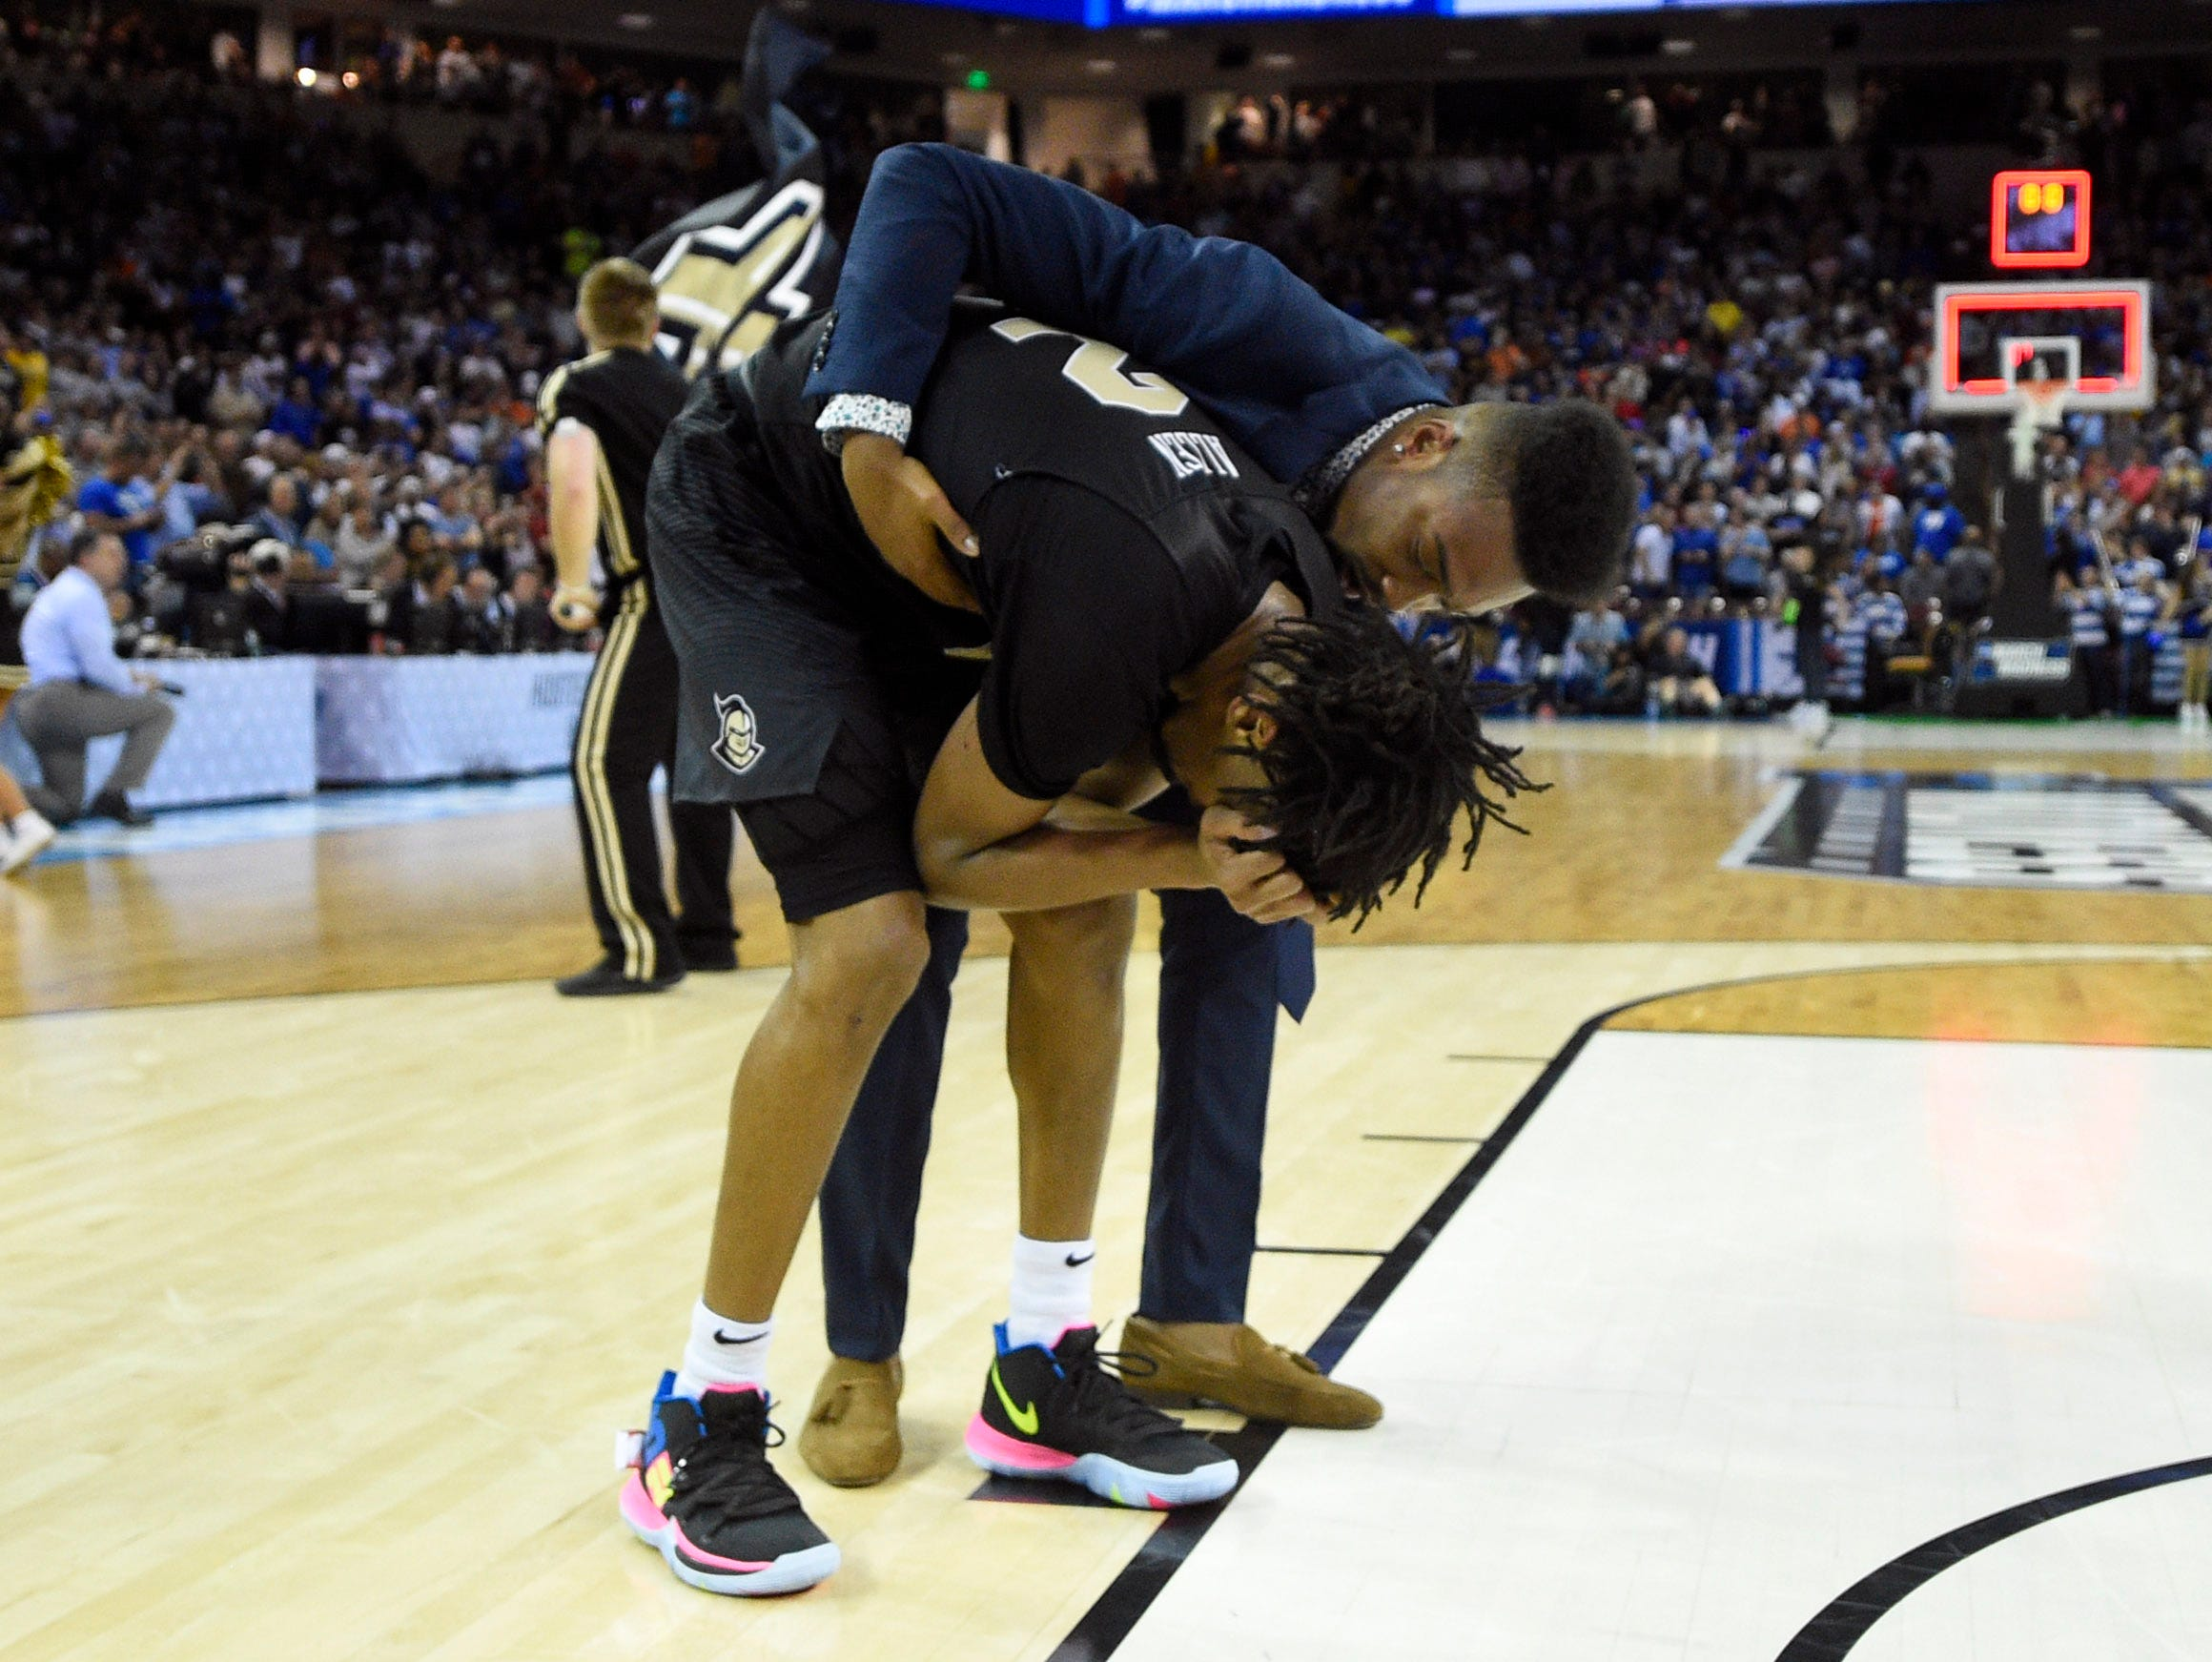 Round of 32: No. 9 Central Florida loses to No. 1 Duke 77-76.